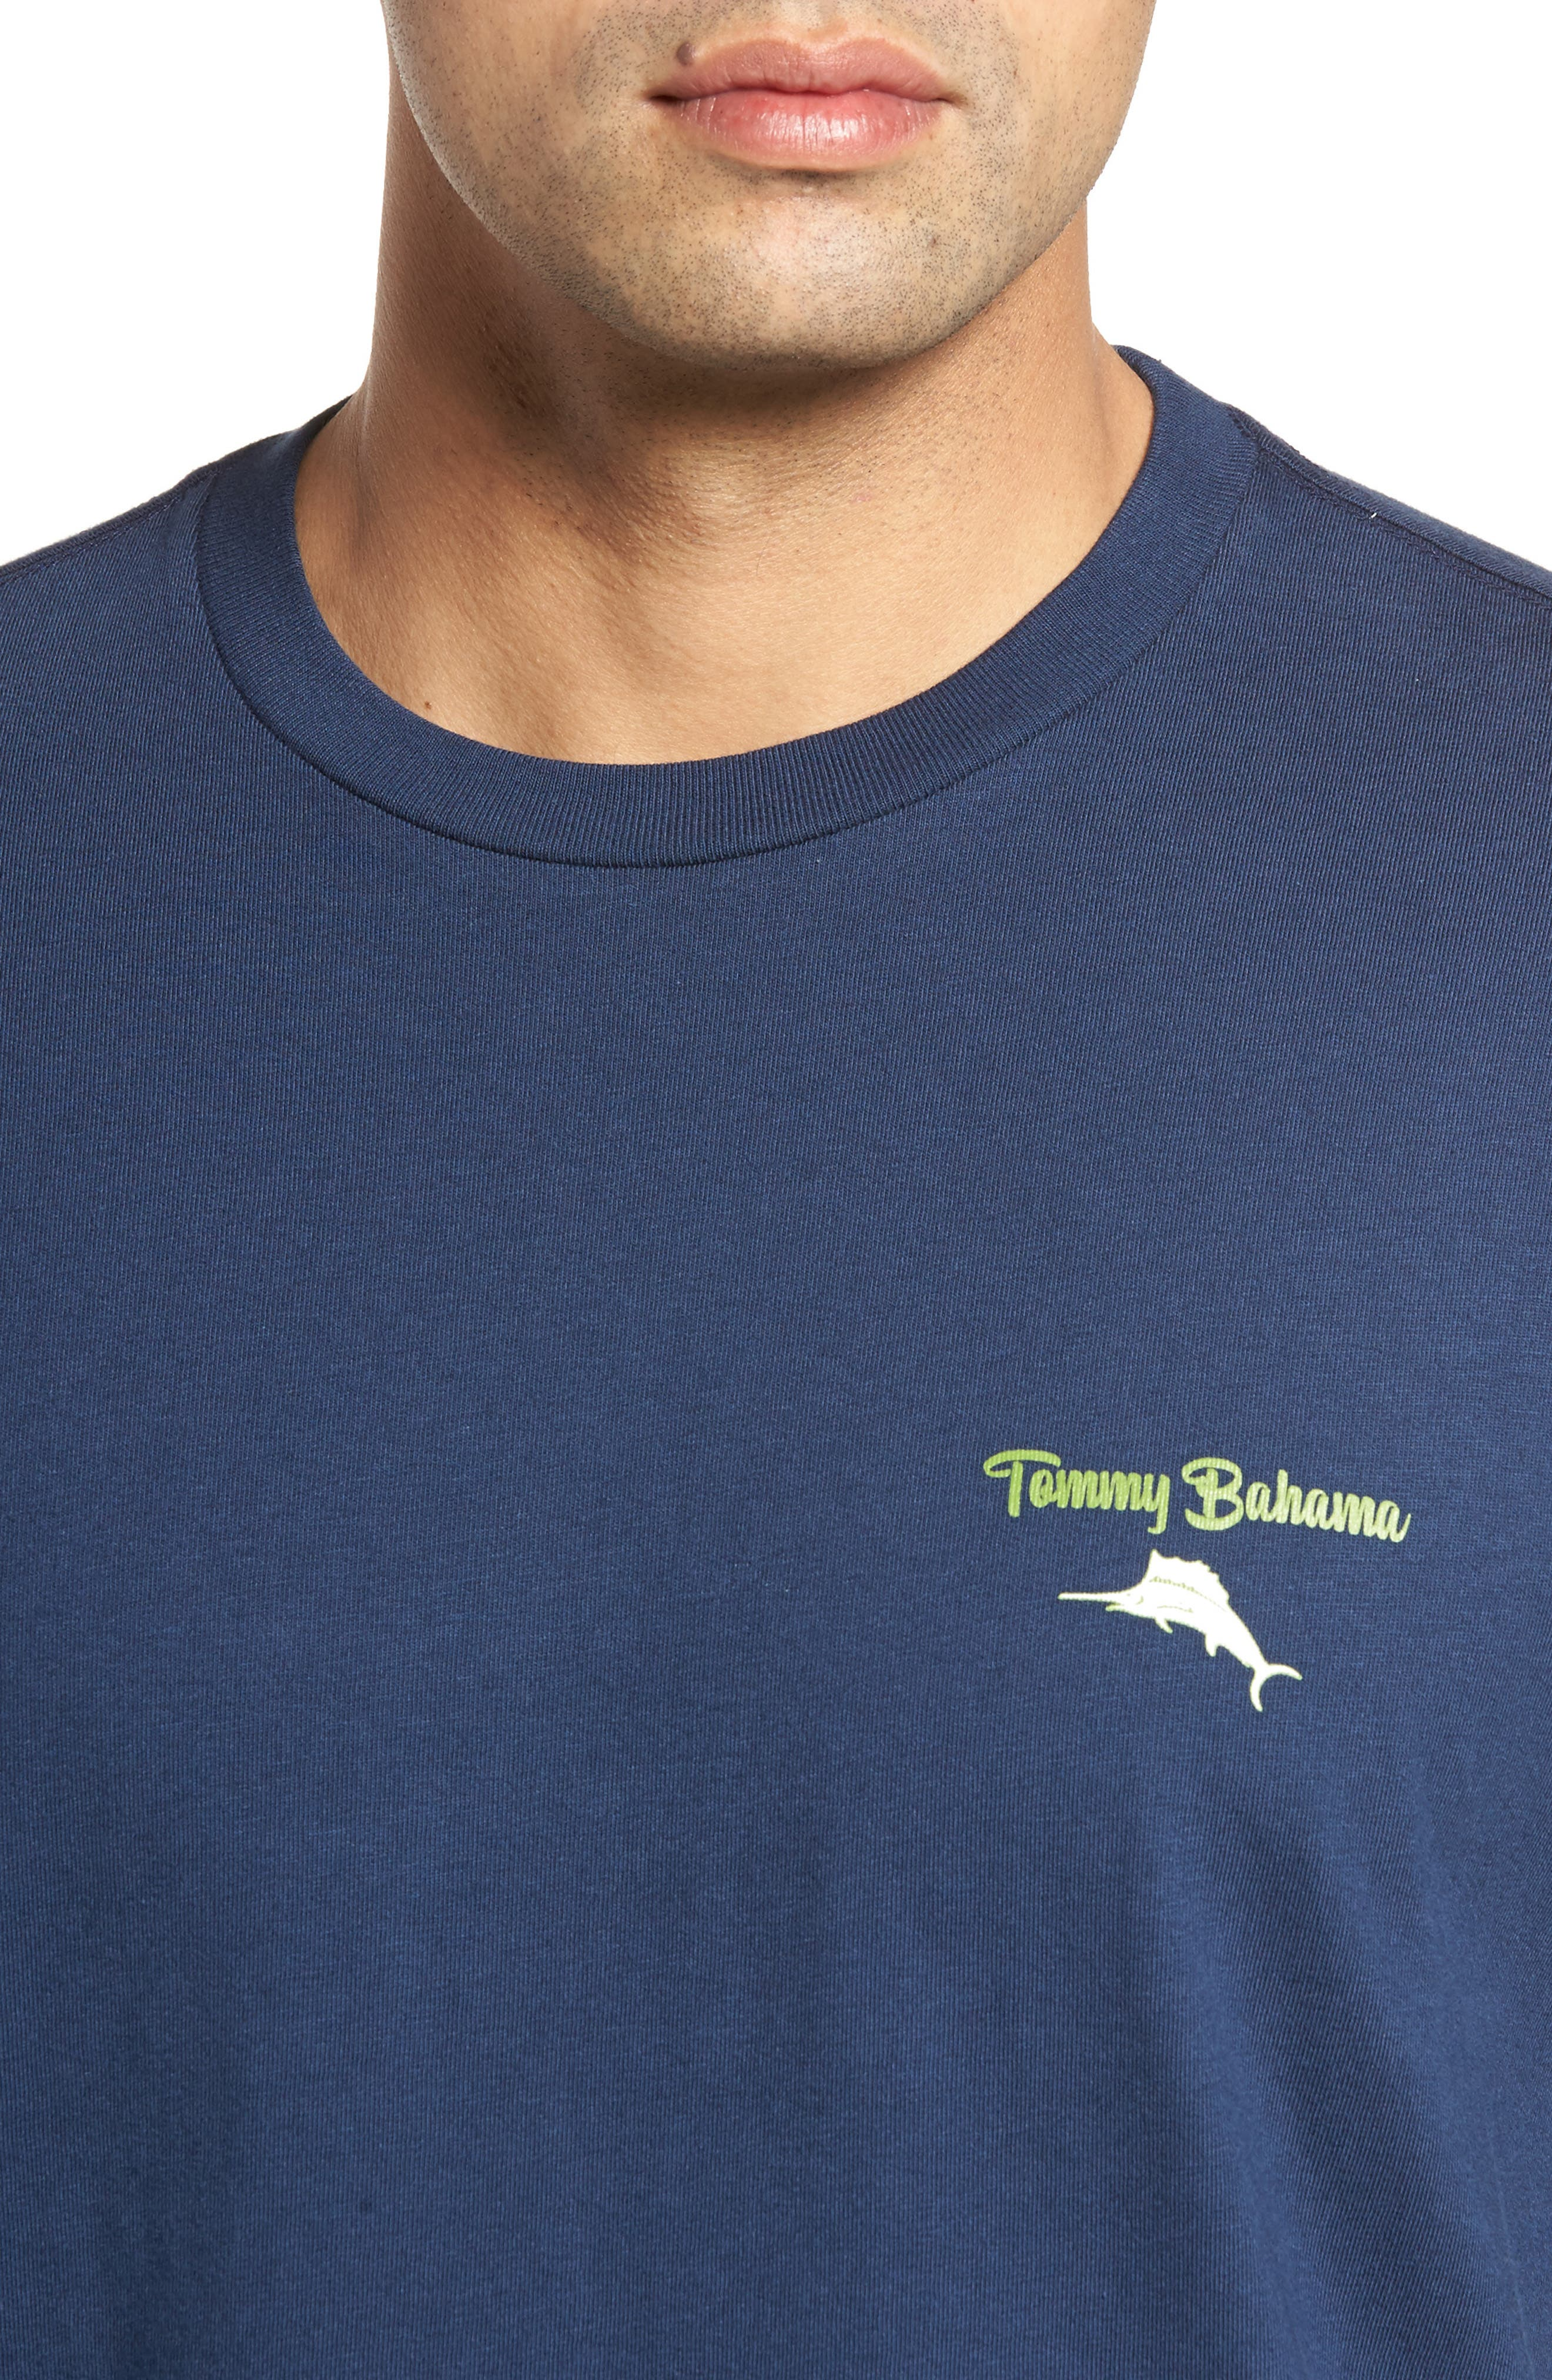 Fore of a Kind Graphic T-Shirt,                             Alternate thumbnail 4, color,                             Navy